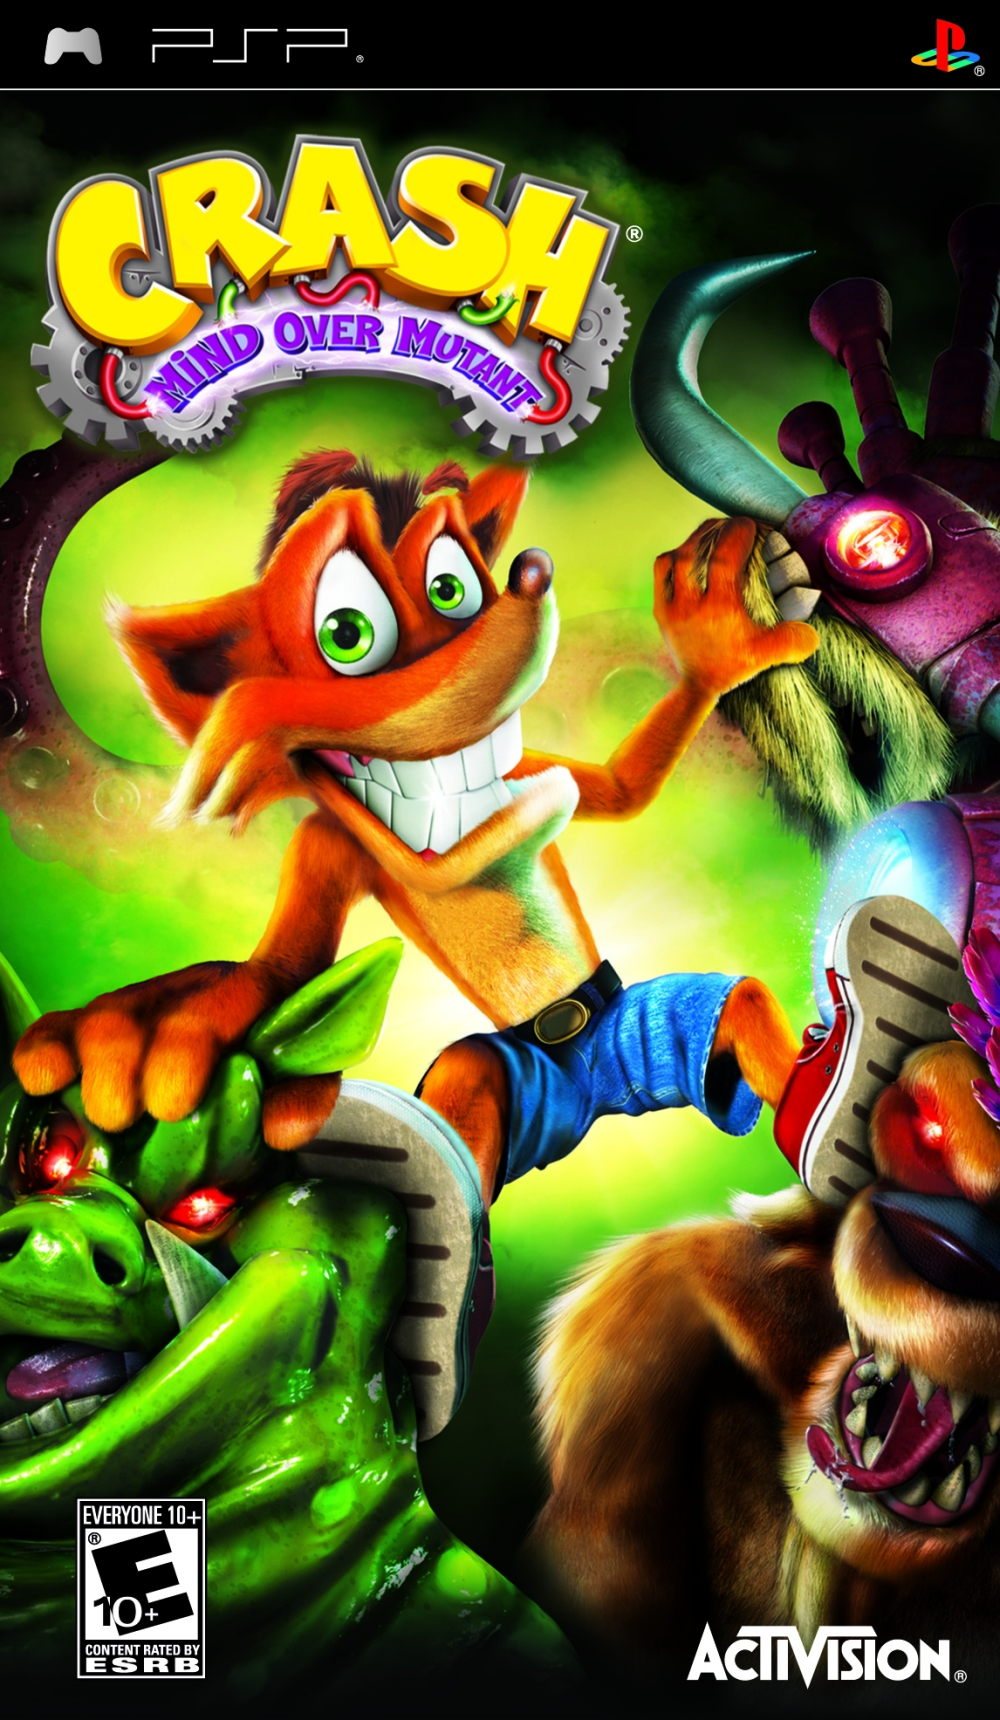 Mind Over Malls Or Does Academia Hate Fashion: Crash Bandicoot Mind Over Mutant PSP Game